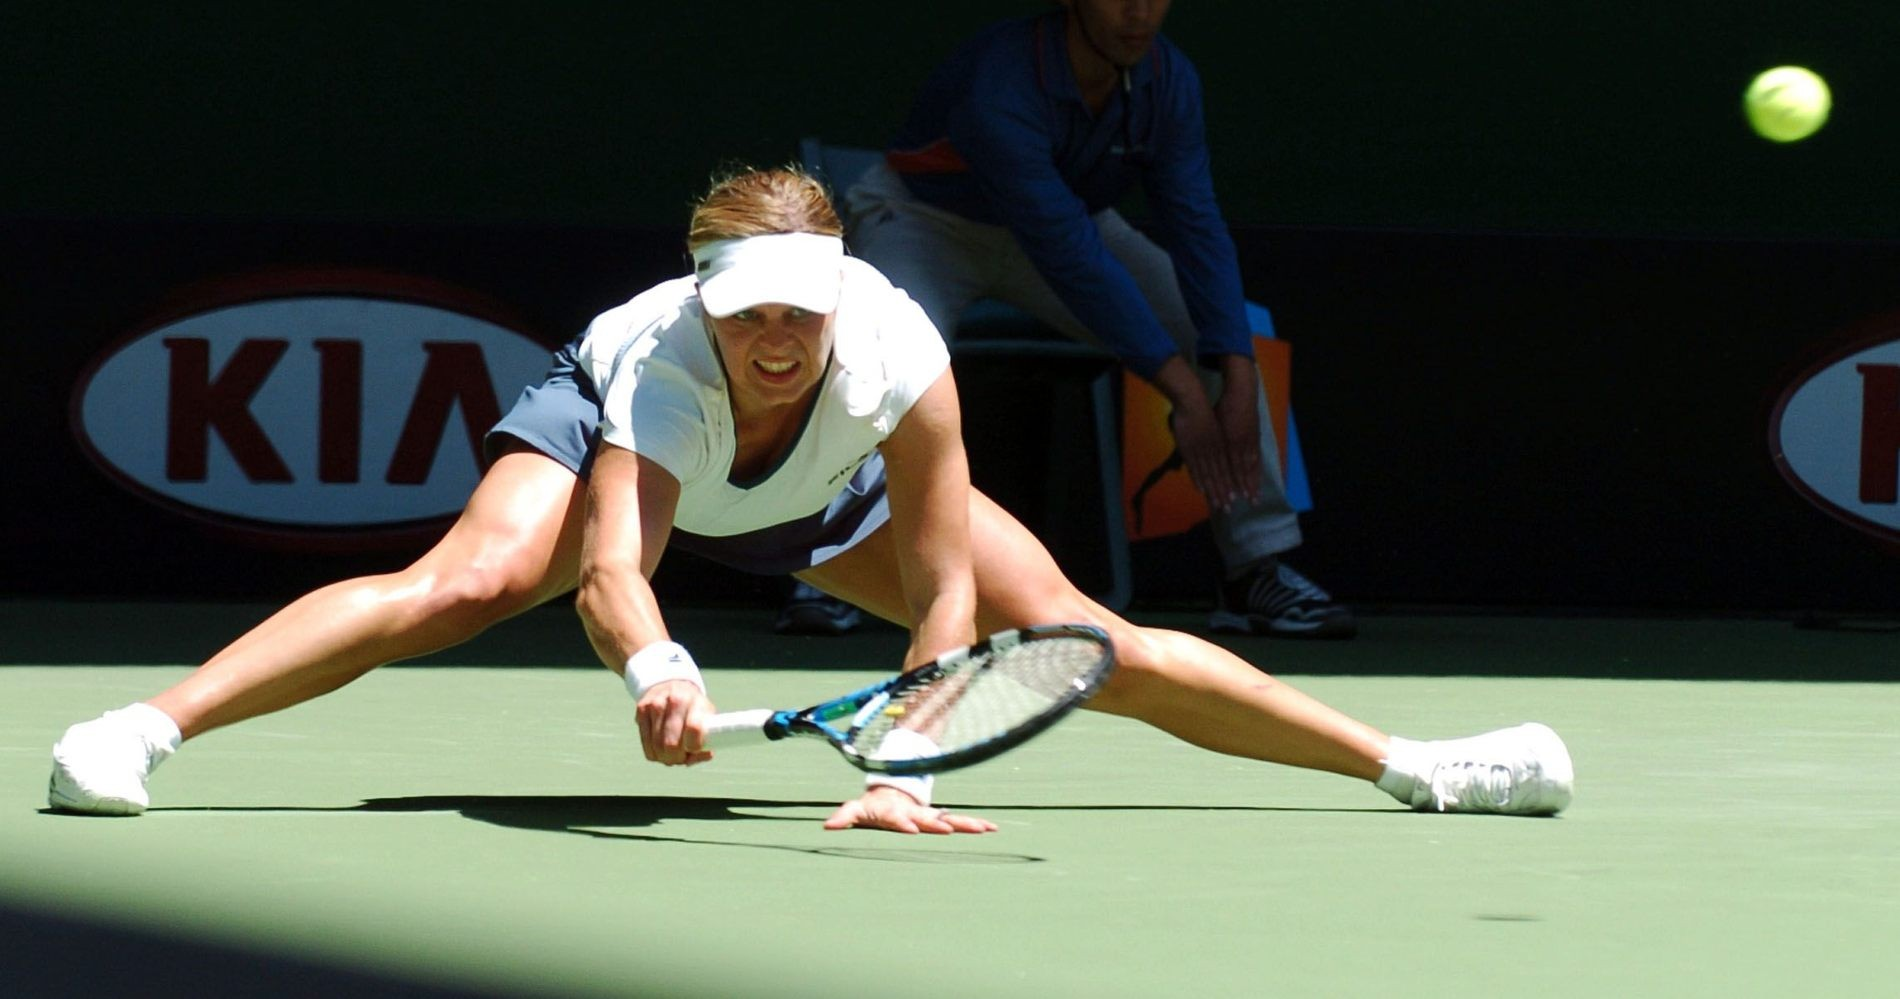 Clijsters in action during the 2007 Australian Open